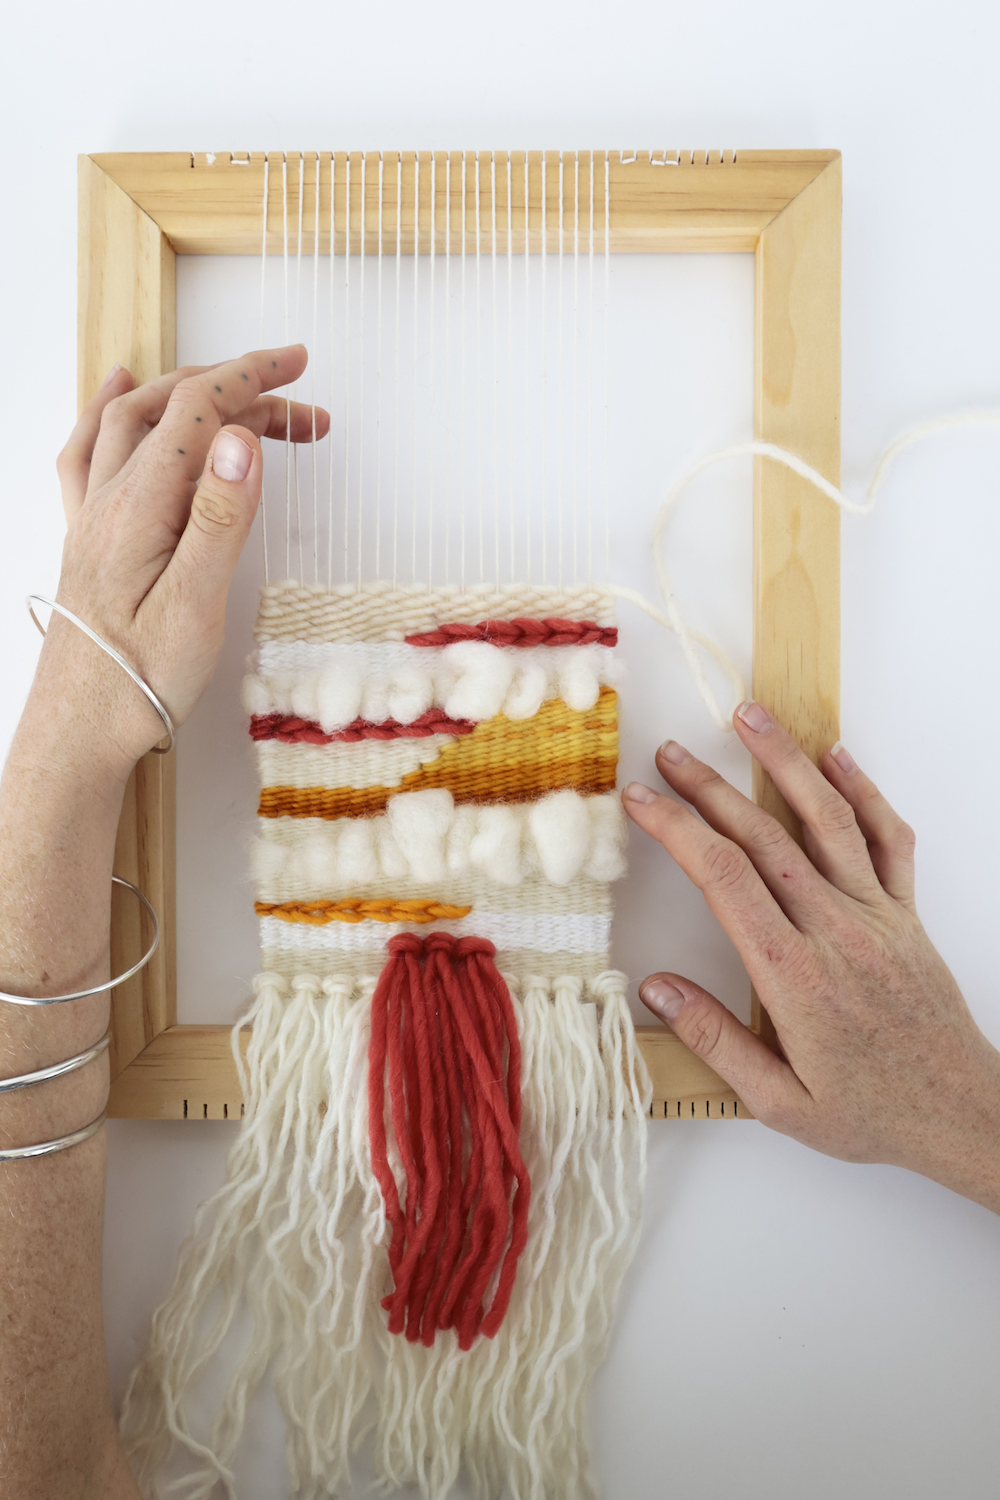 22bffc7b0198ff Artist Workshop  Intro to Tapestry Weaving with Louisiana Contemporary  artist Lena Kolb